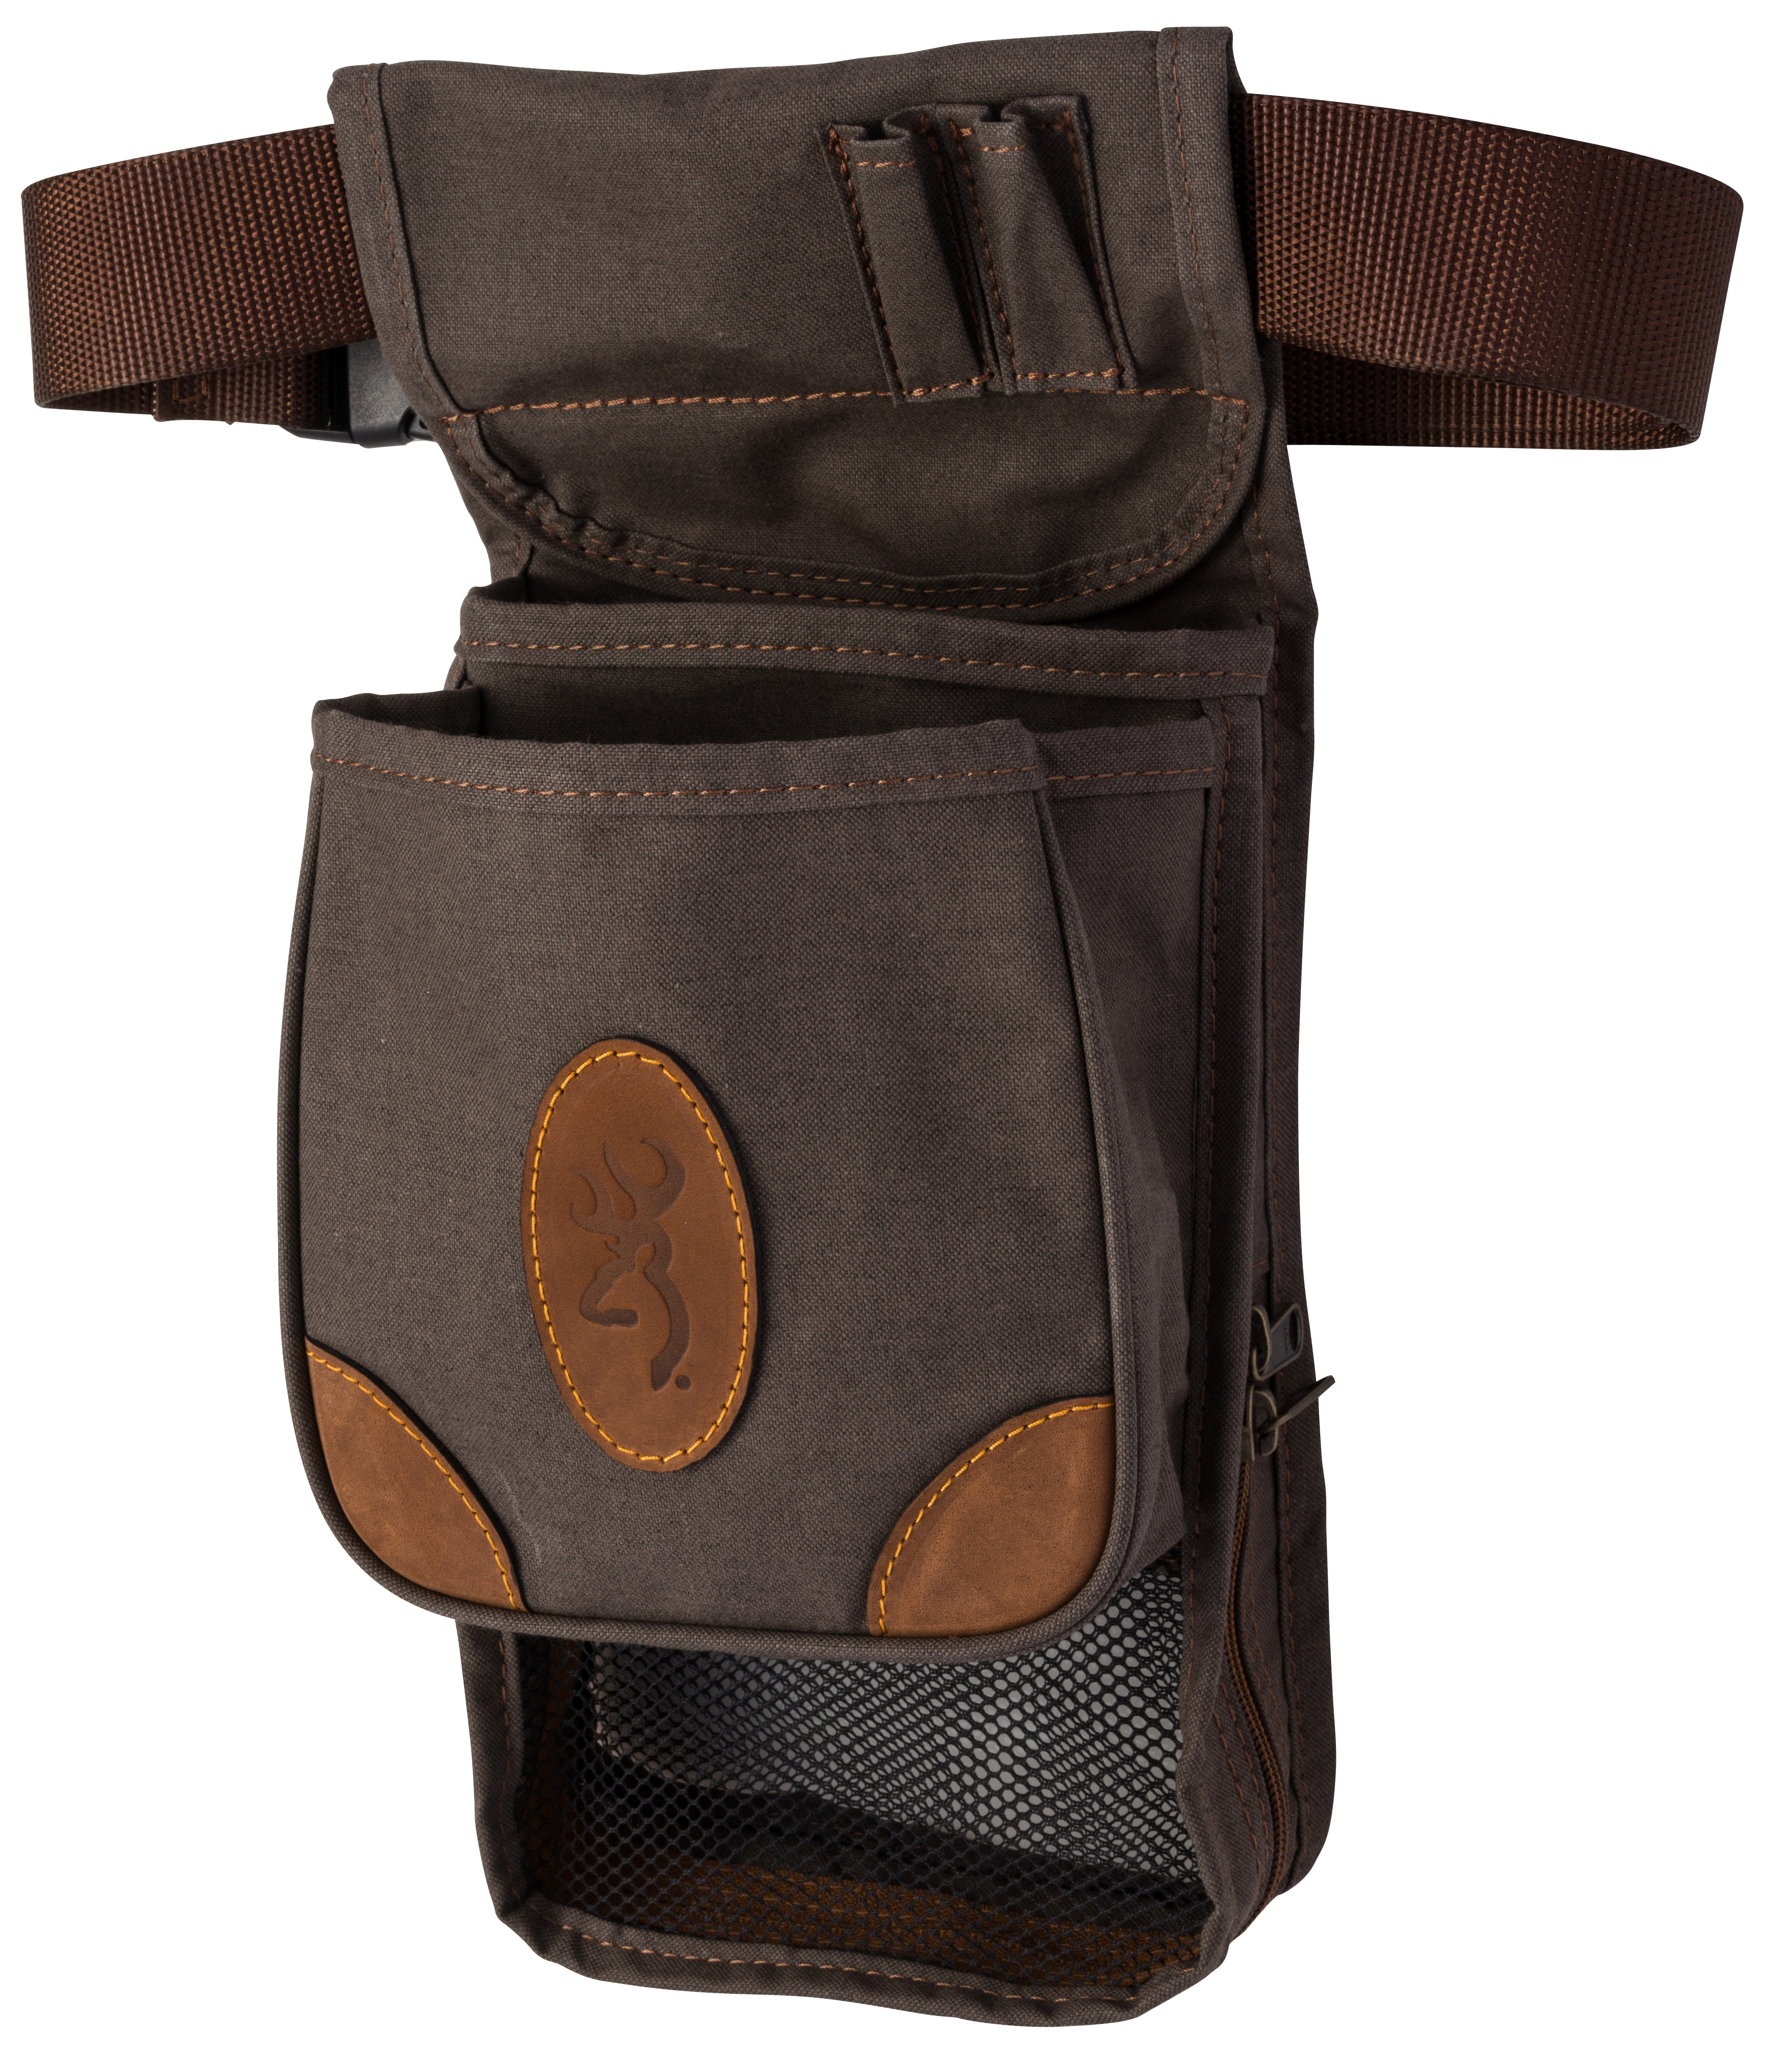 Browning Lona Canvas/Leather Large Deluxe Shell Pouch - Flint/Brown